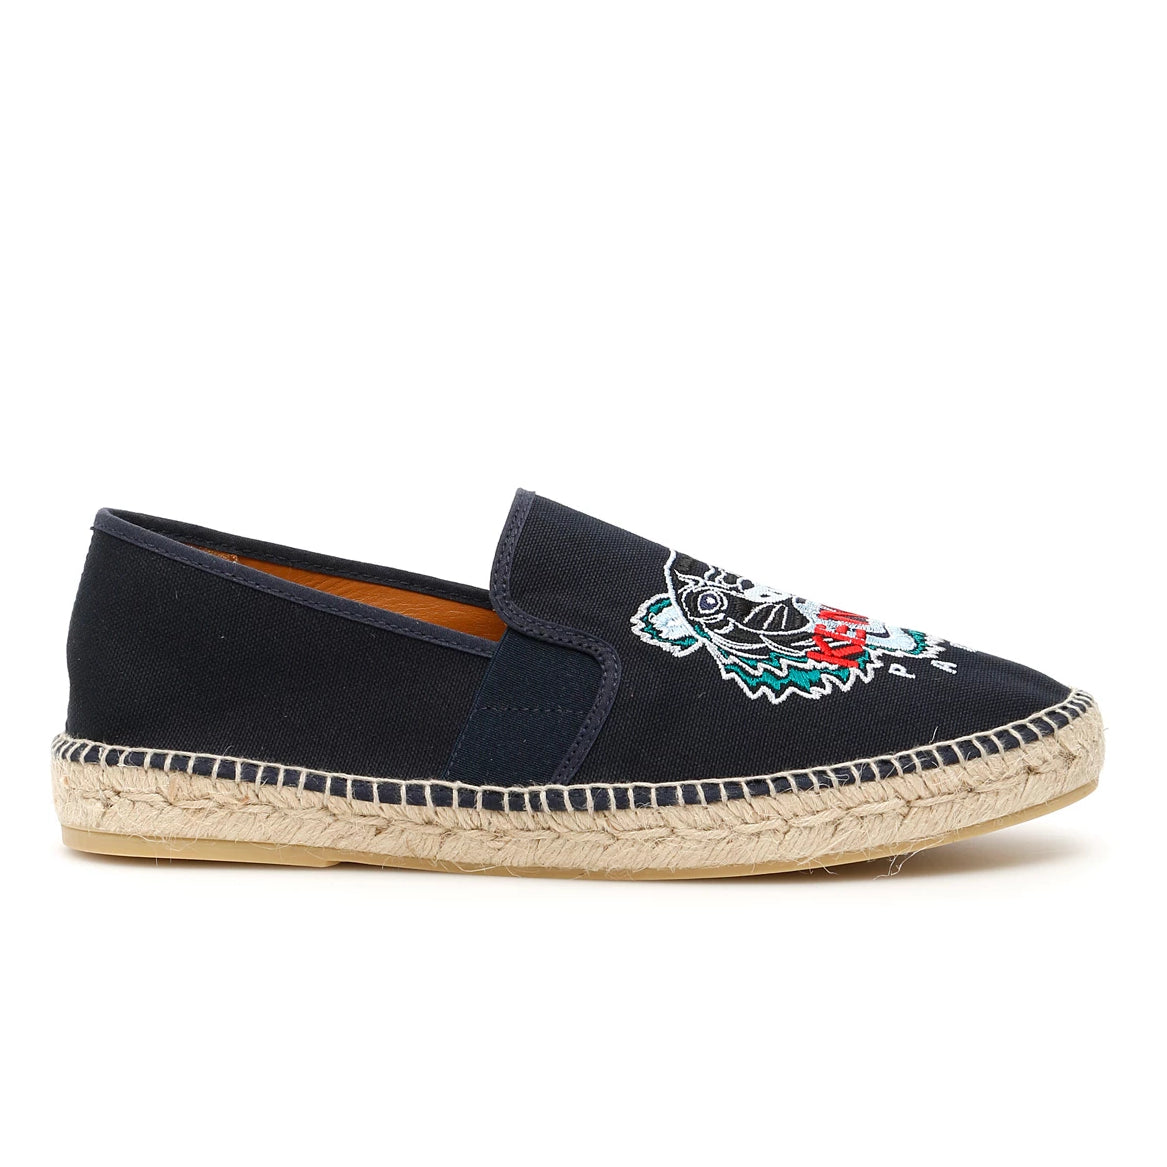 Kenzo Shoes KENZO TIGER EMBROIDERED ESPADRILLES